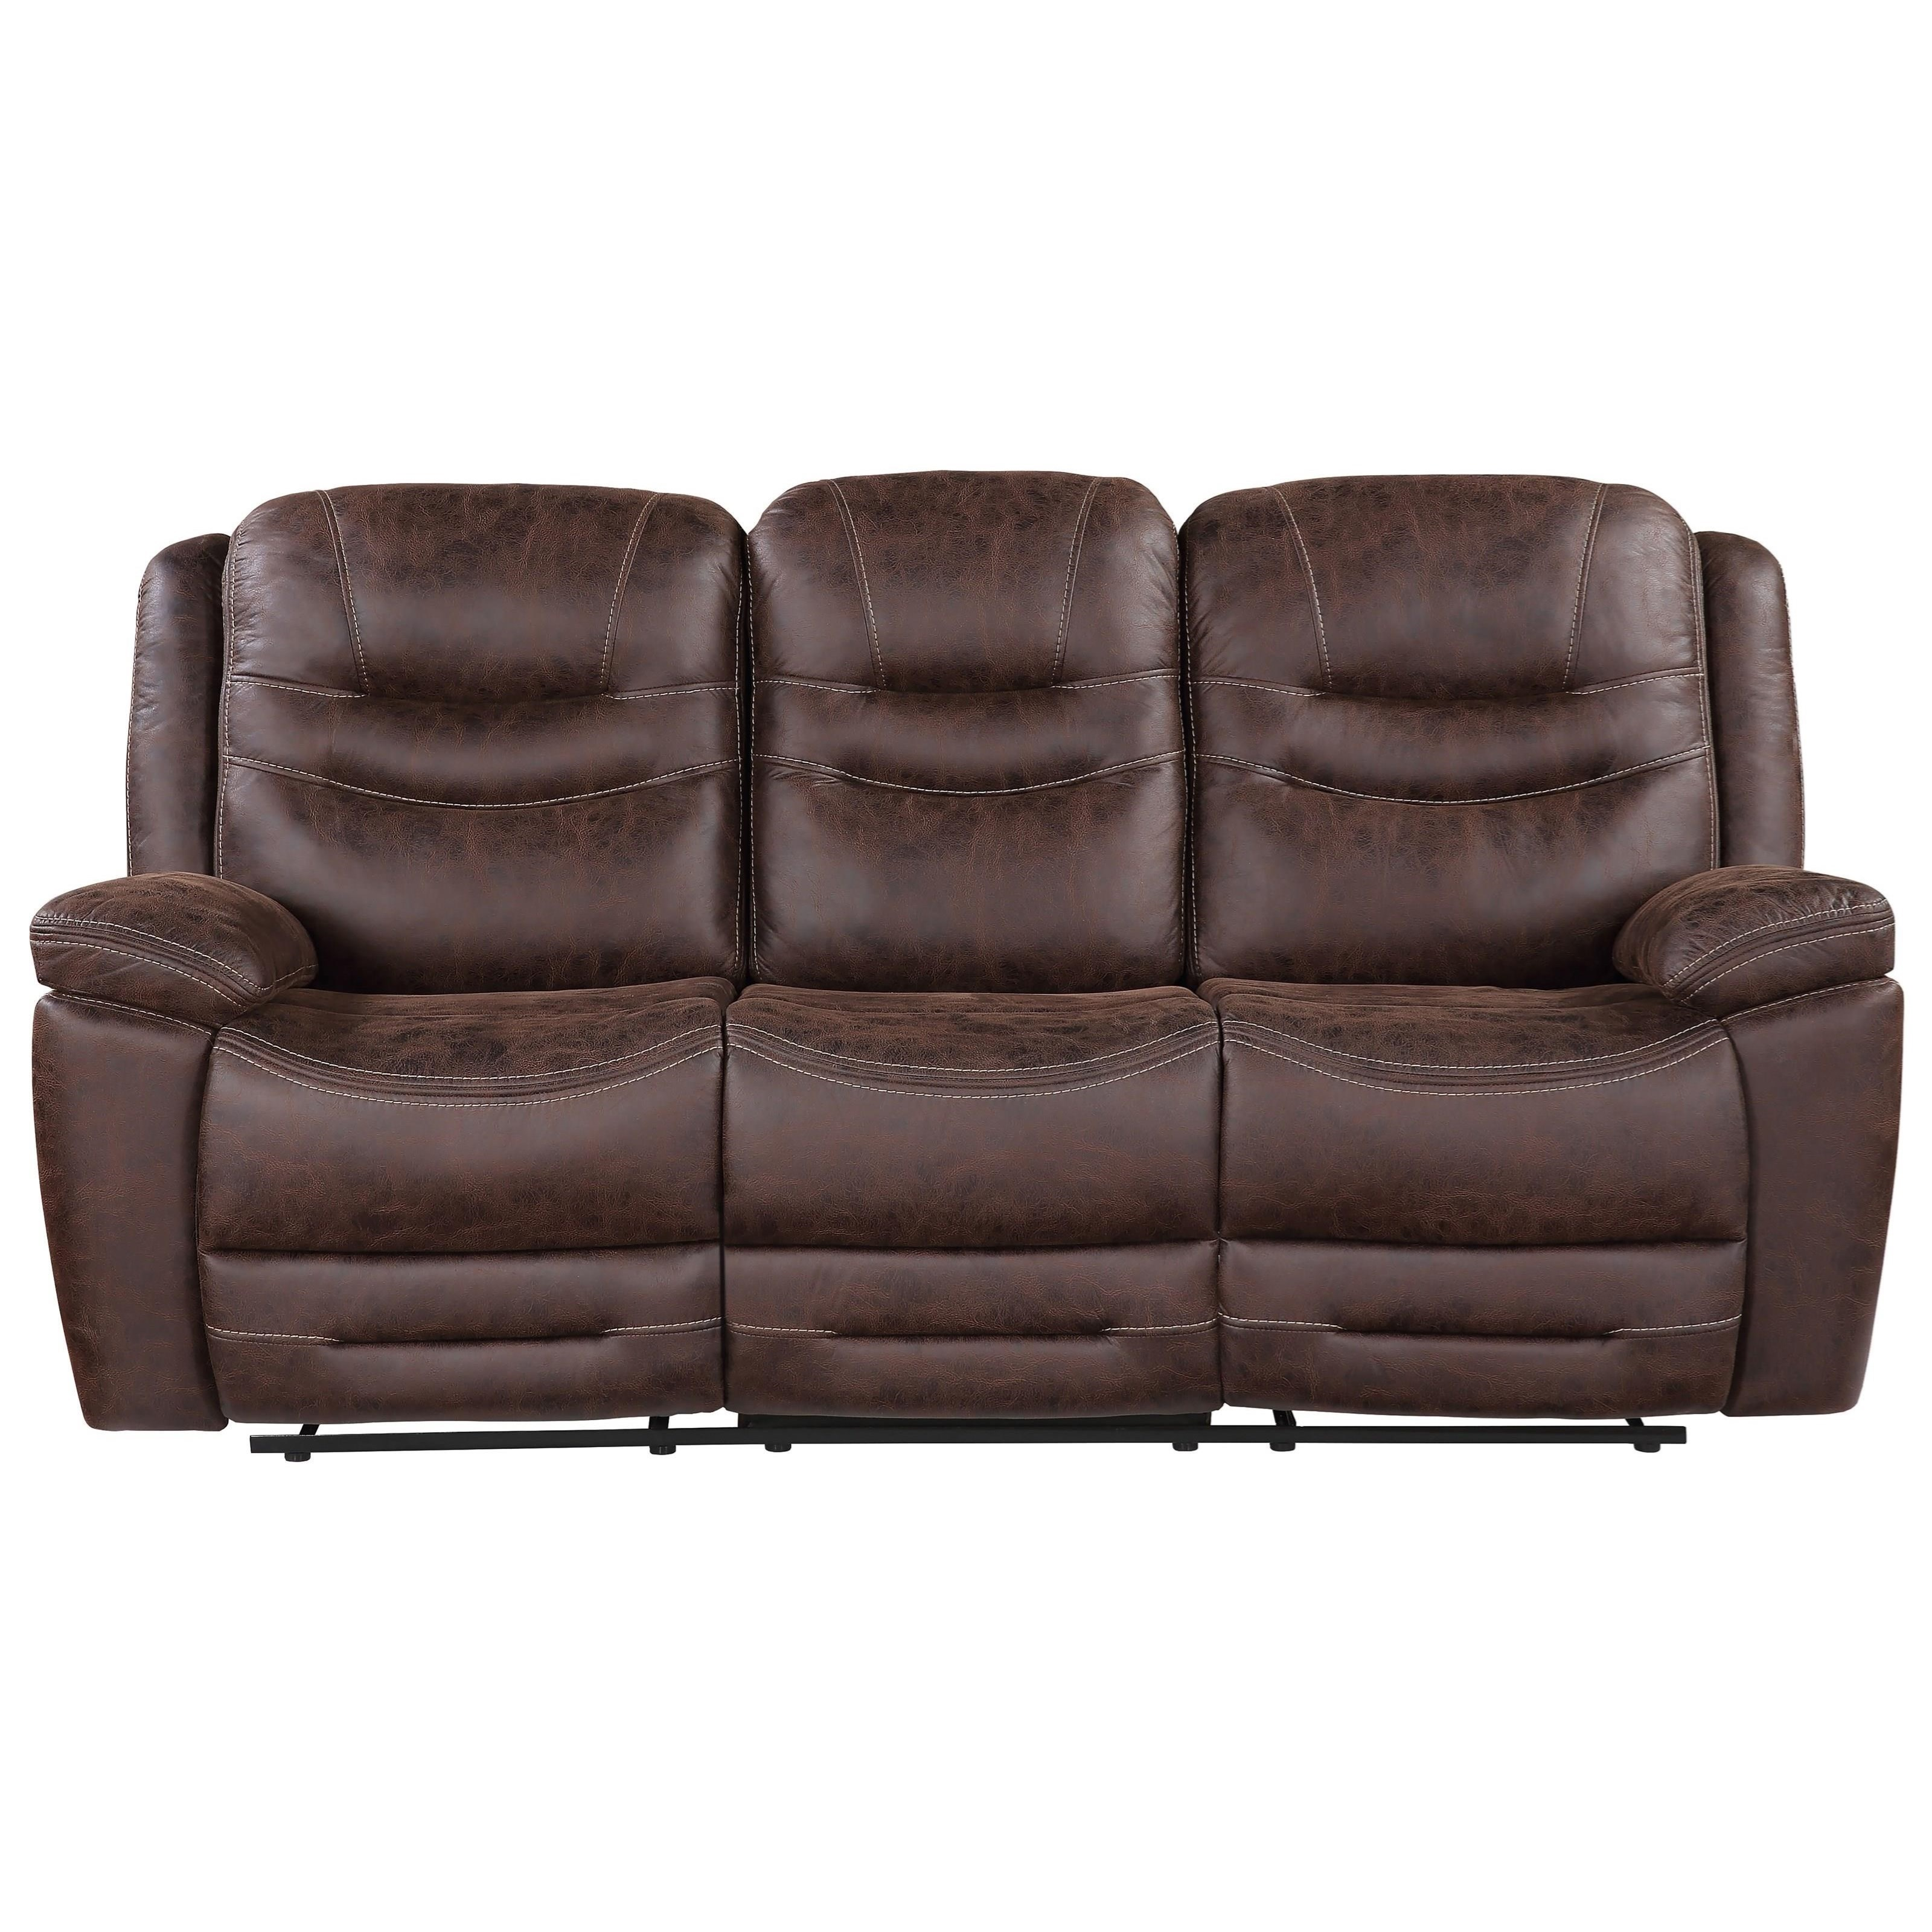 Stetson Manual Reclining Sofa by Steve Silver at Northeast Factory Direct